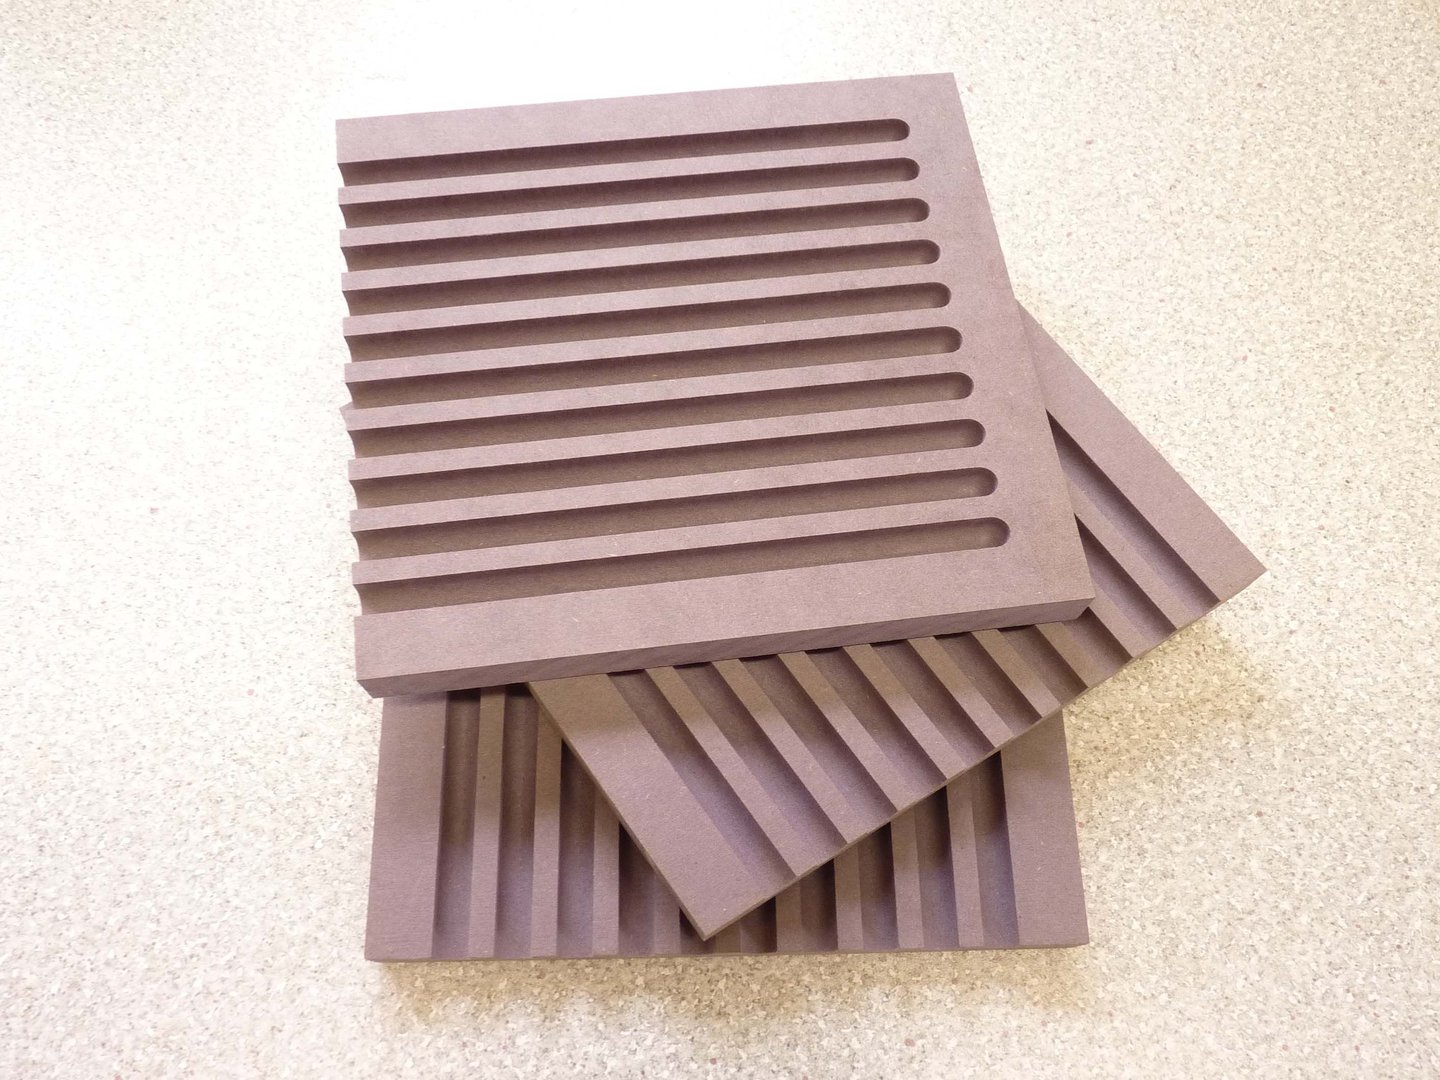 mdf nesting boards water resistant